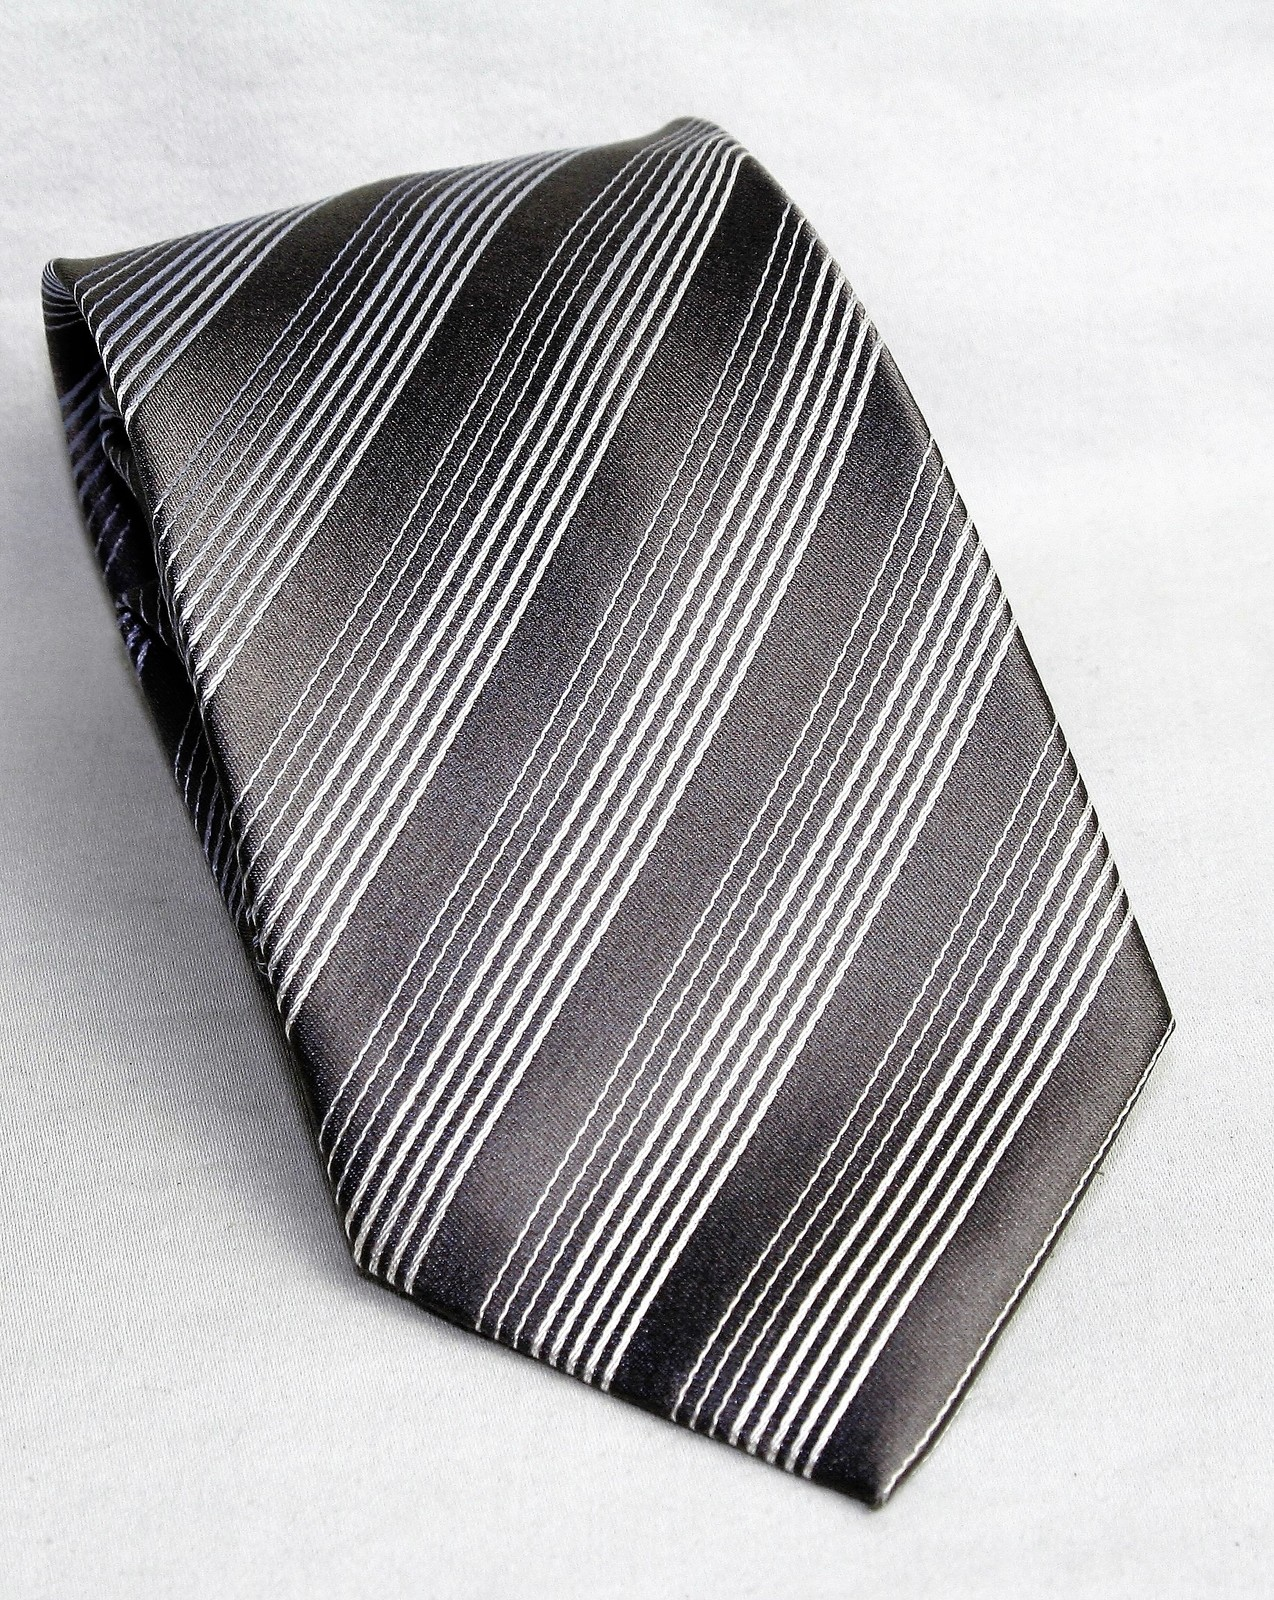 Kenneth Cole Reaction Silver Gray Striped Design 100% Silk Men's Necktie Tie